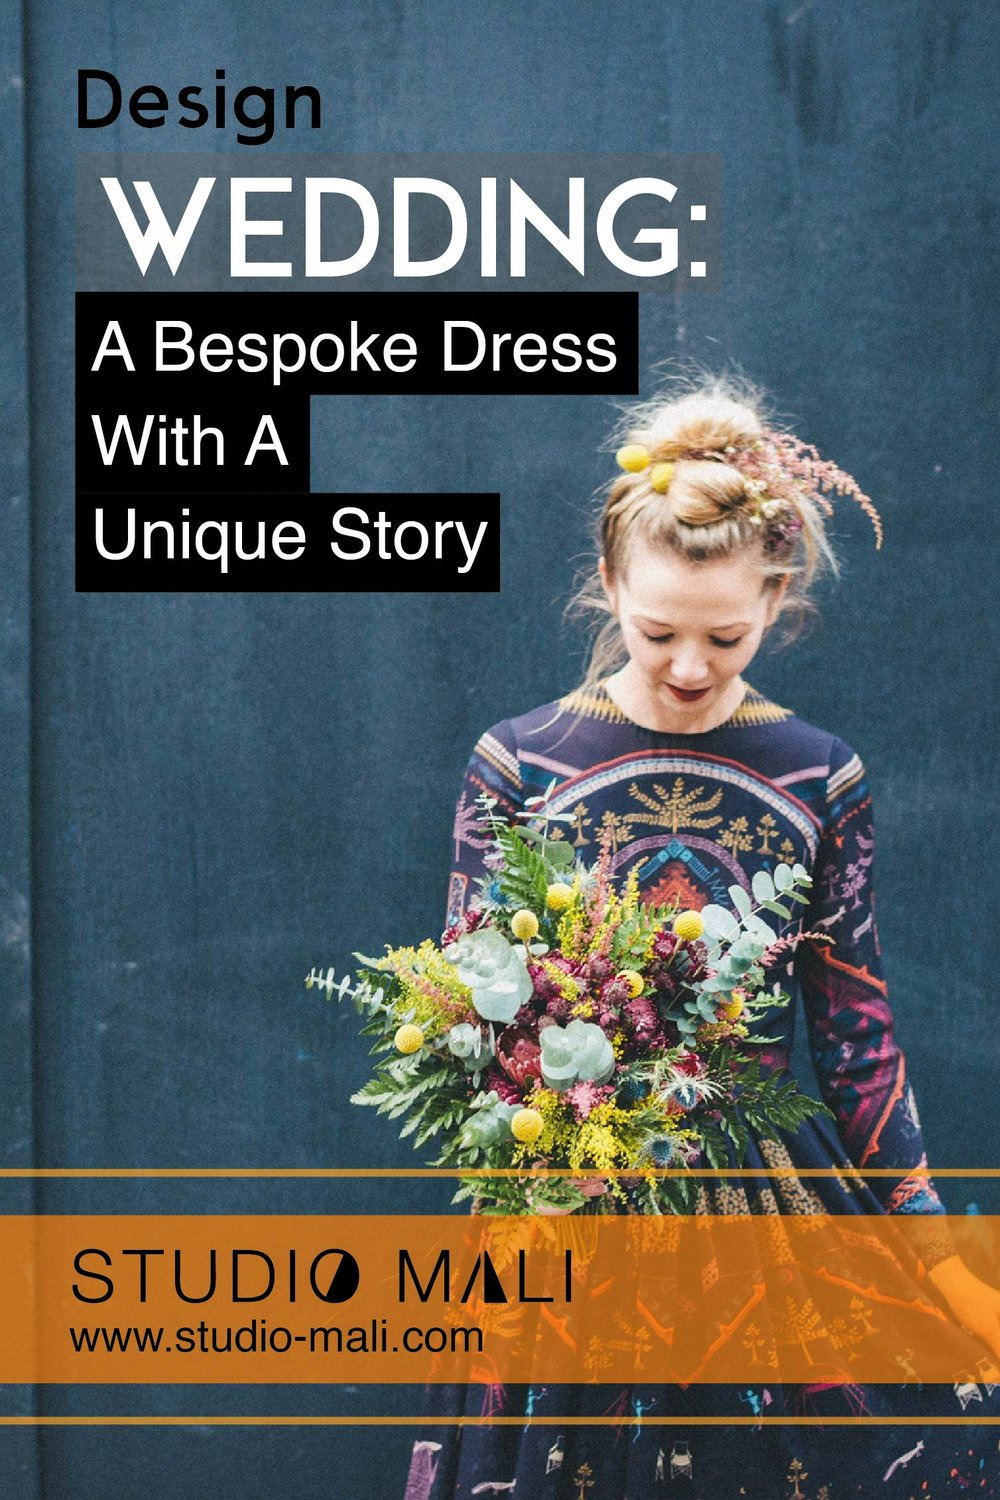 Wedding - A Bespoke Dress With A Unique Story, by Studio Mali-17.jpg